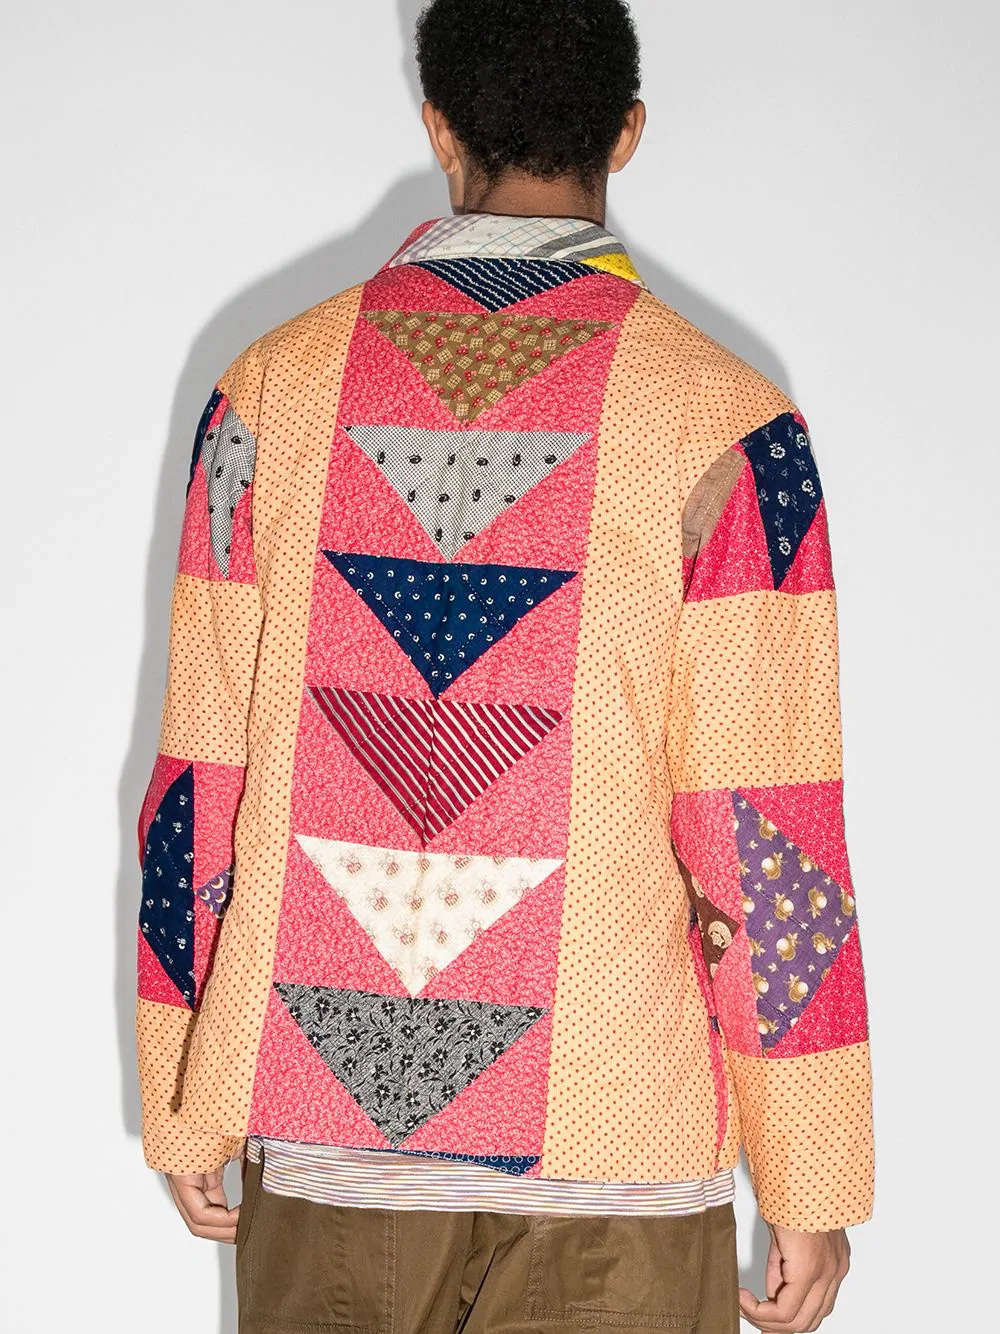 A Bode Patchwork Quilted Jacket from Farfetch. Mindful of resources, Bode writes: &#8